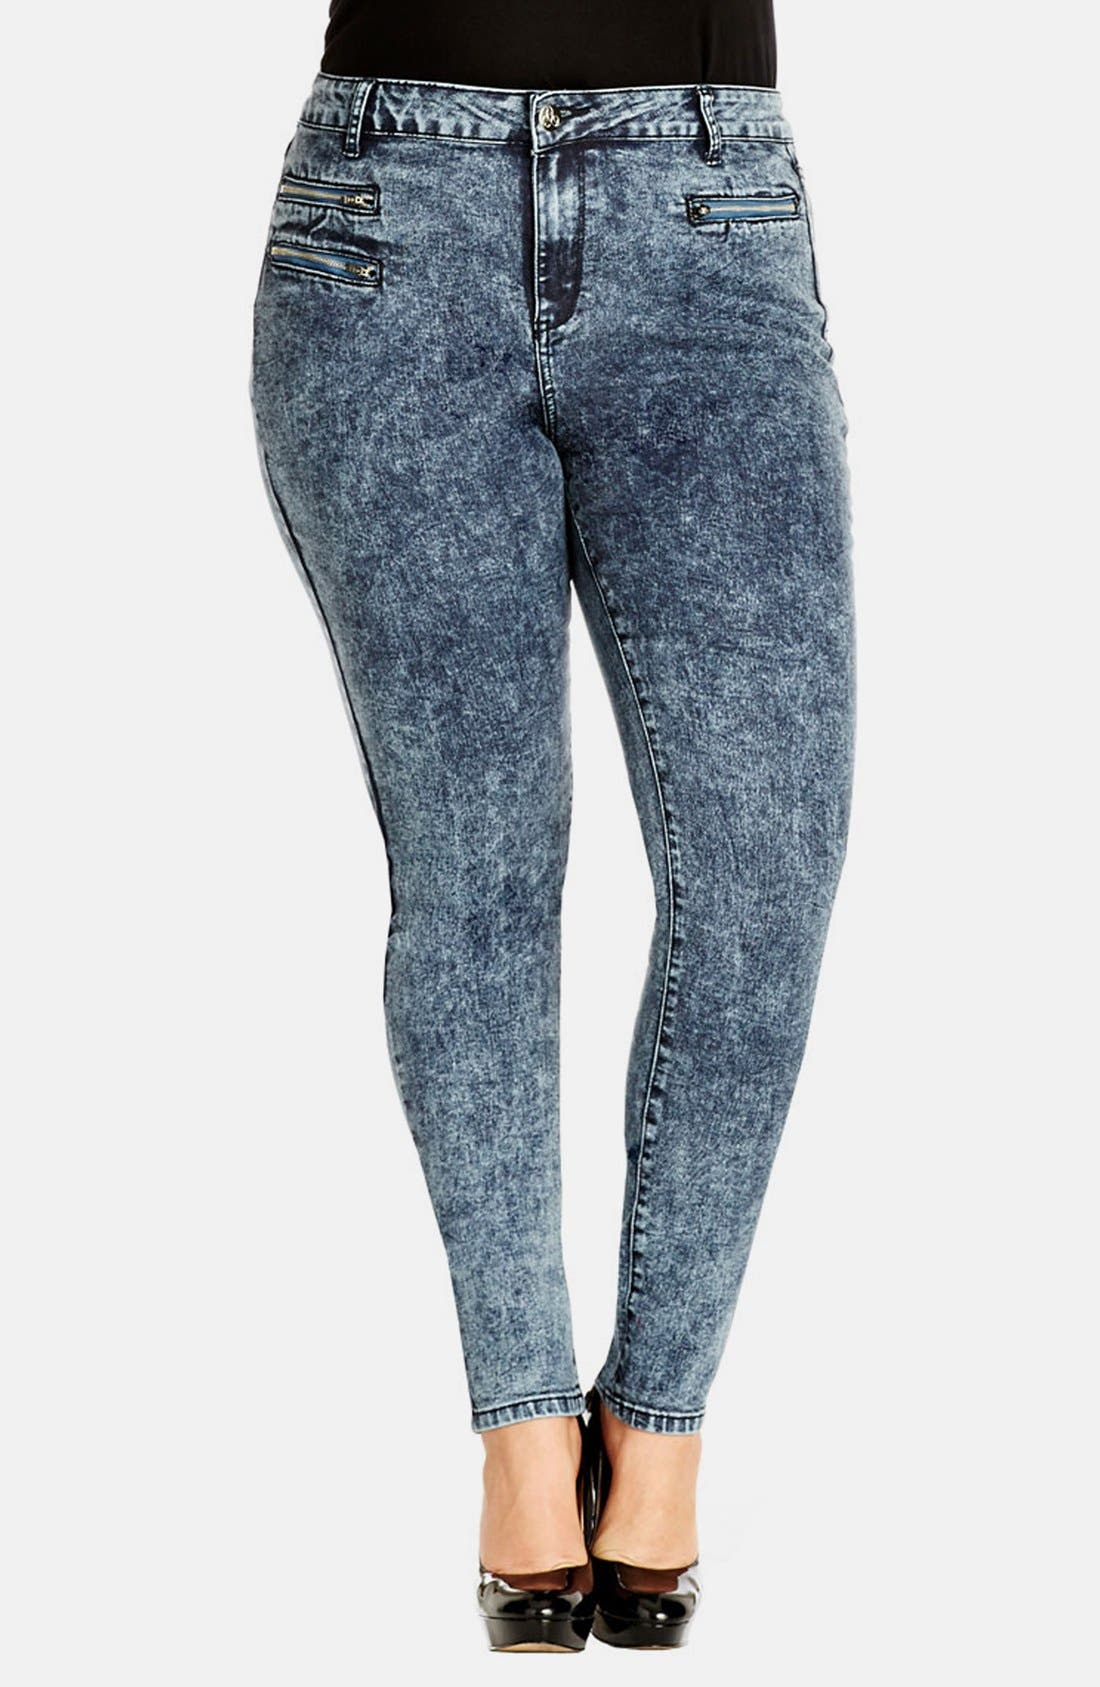 Alternate Image 1 Selected - City Chic Zip Detail Acid Wash Skinny Jeans (Medium) (Plus Size)